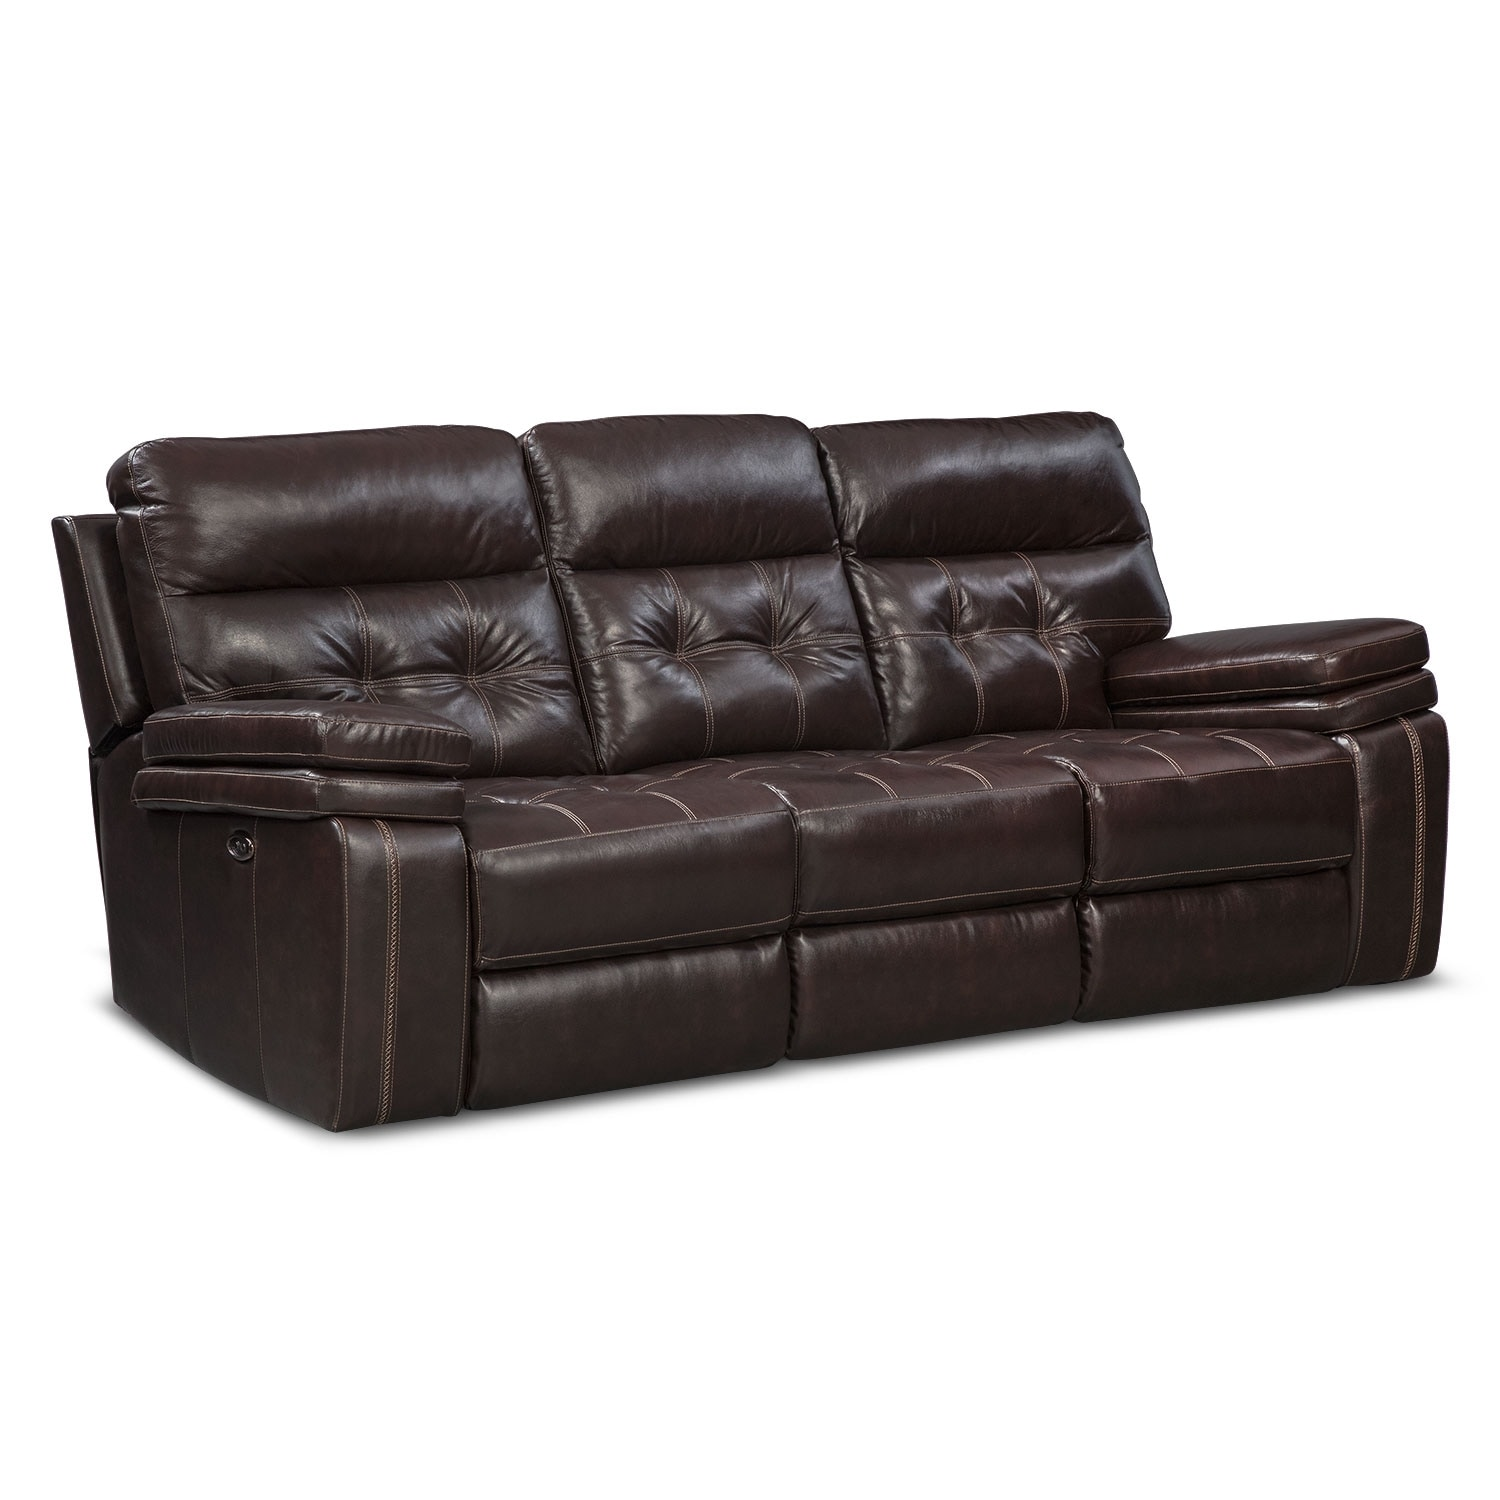 Brisco Power Reclining Sofa   Brown By One80